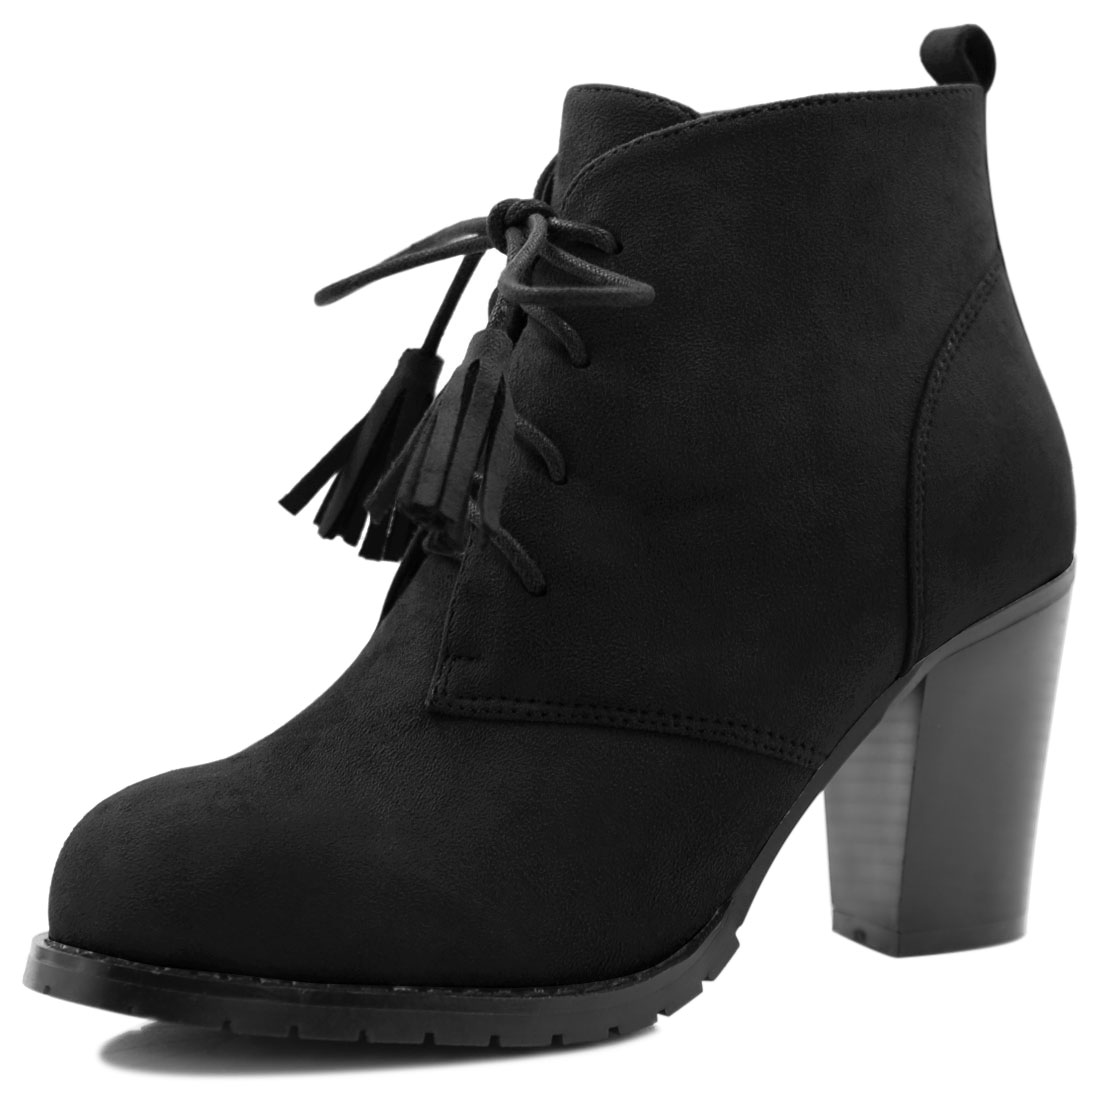 Women Rounded Toe Block Heel Tassel Lace-Up Ankle Booties Black US 7.5